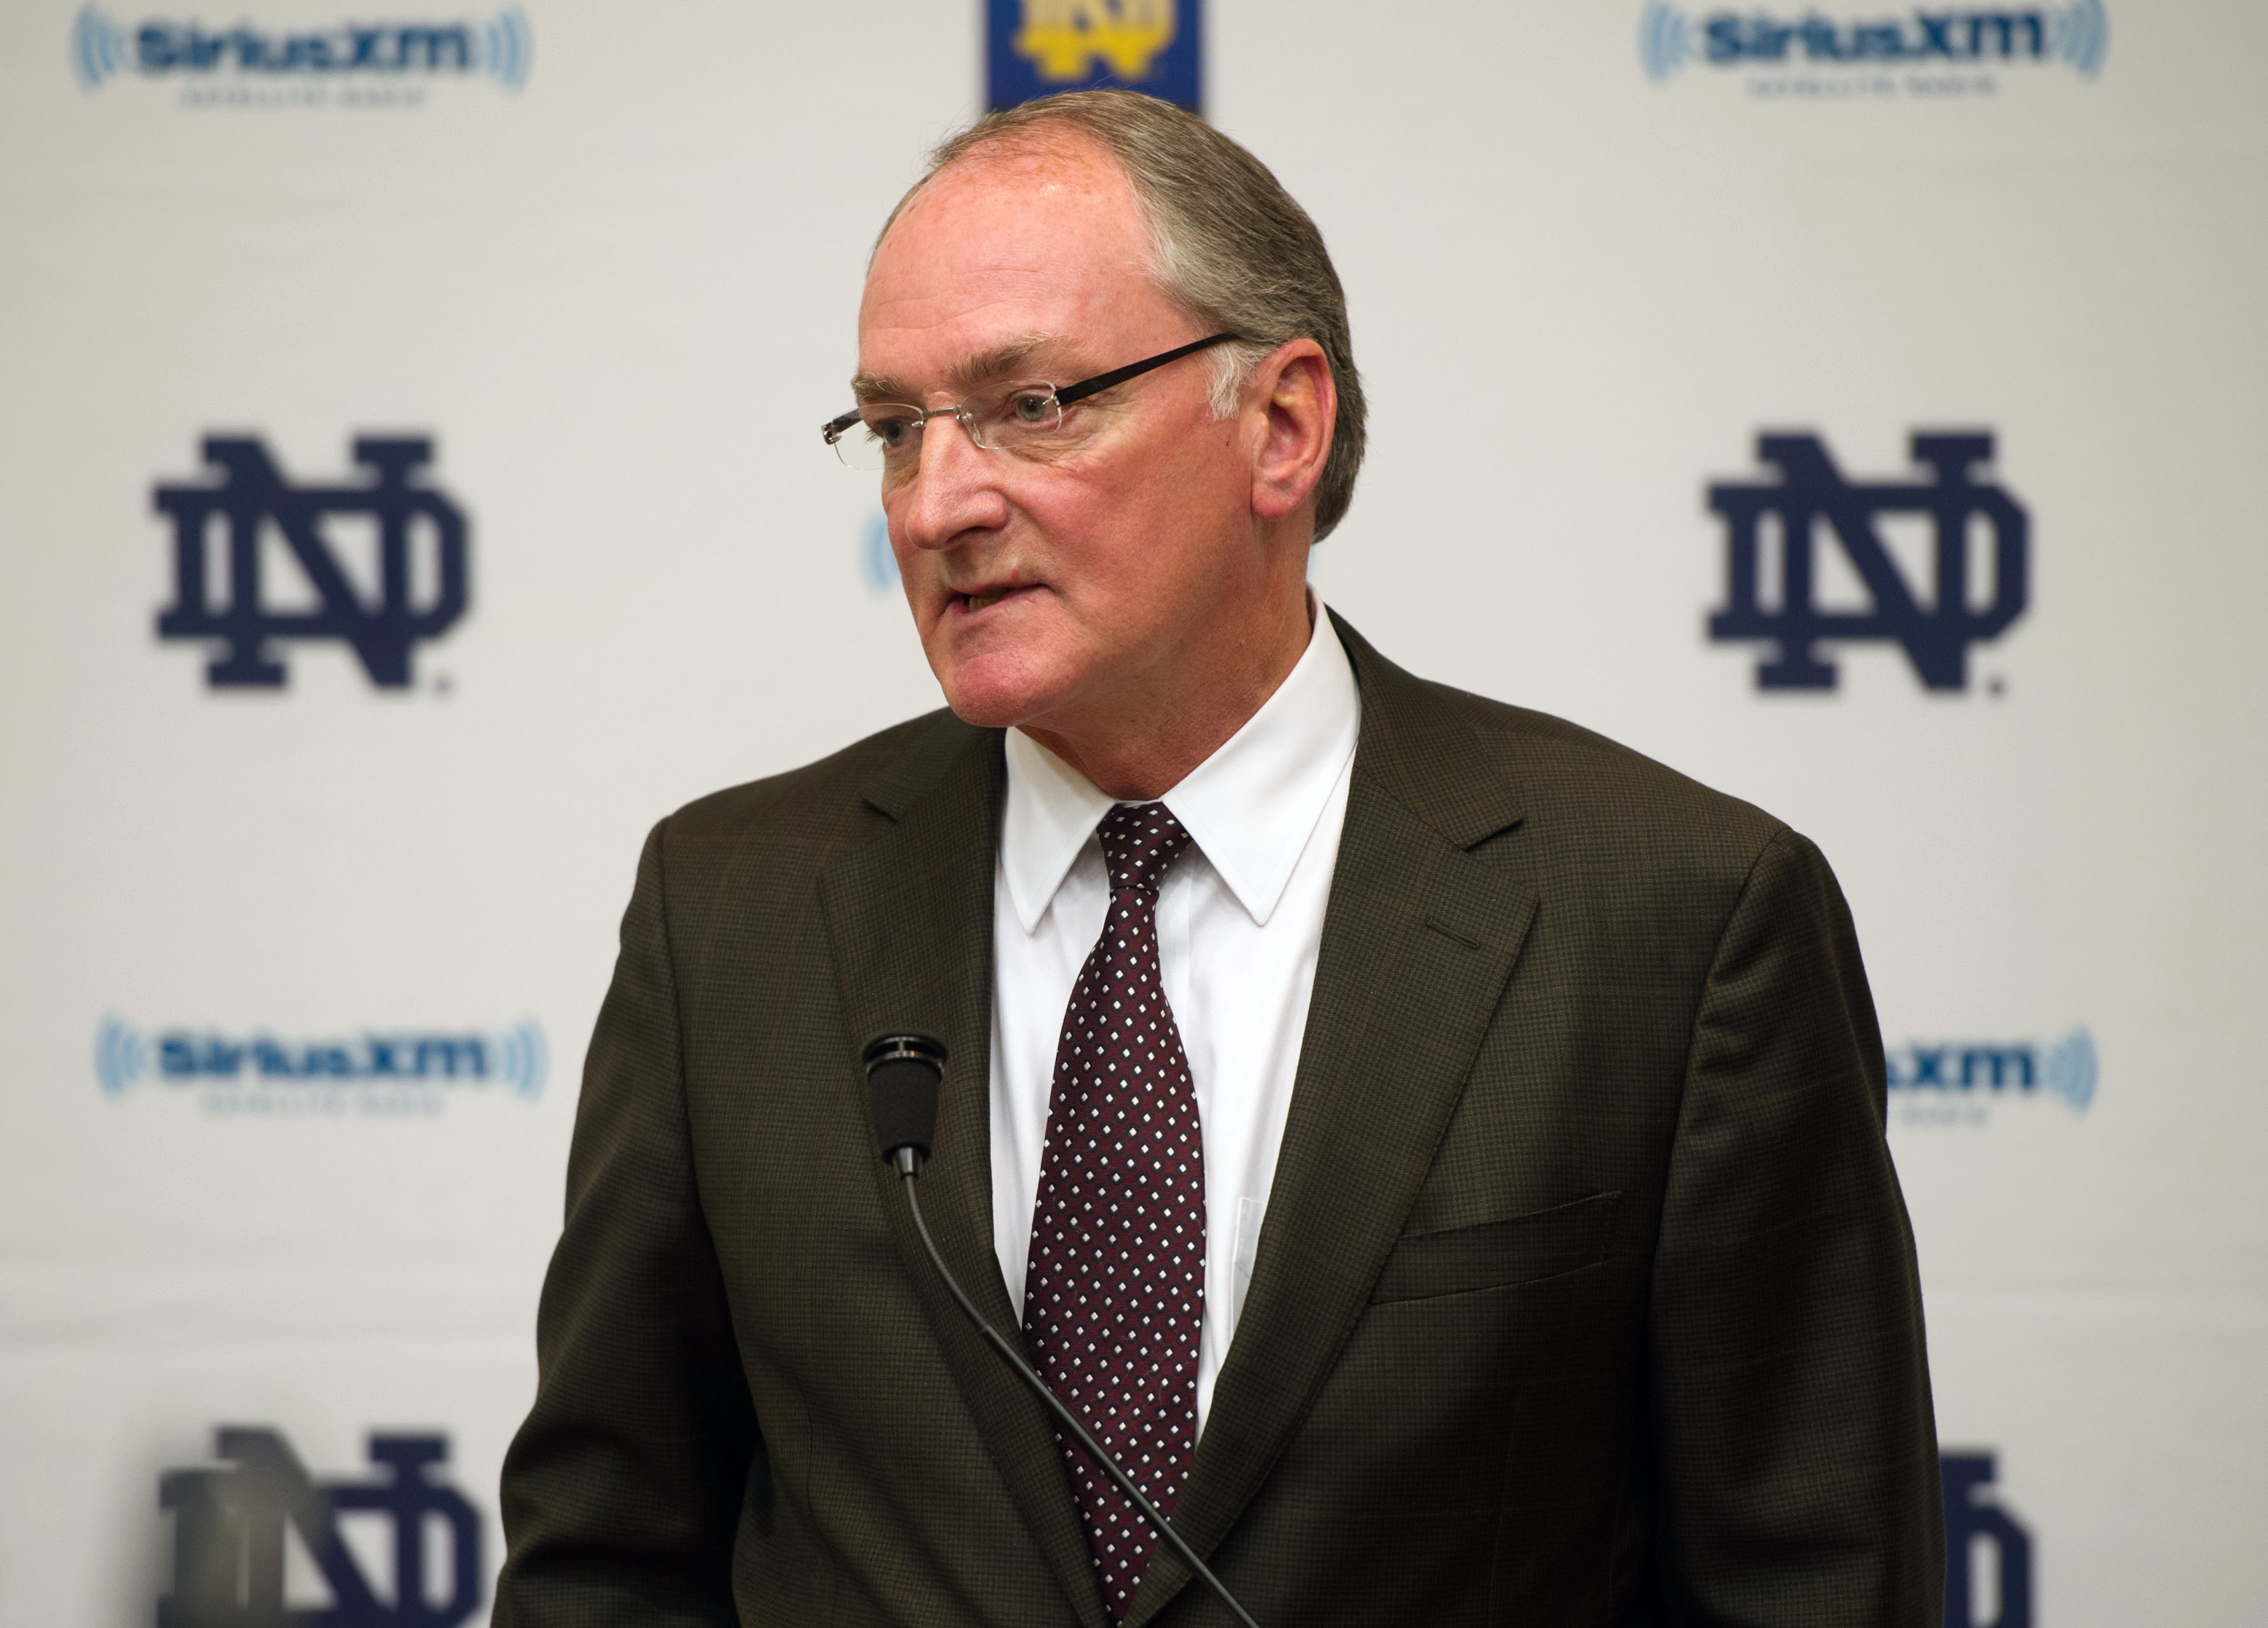 Notre Dame AD Jack Swarbrick has no interest in being on the playoff selection committee. (USA Today Sports)